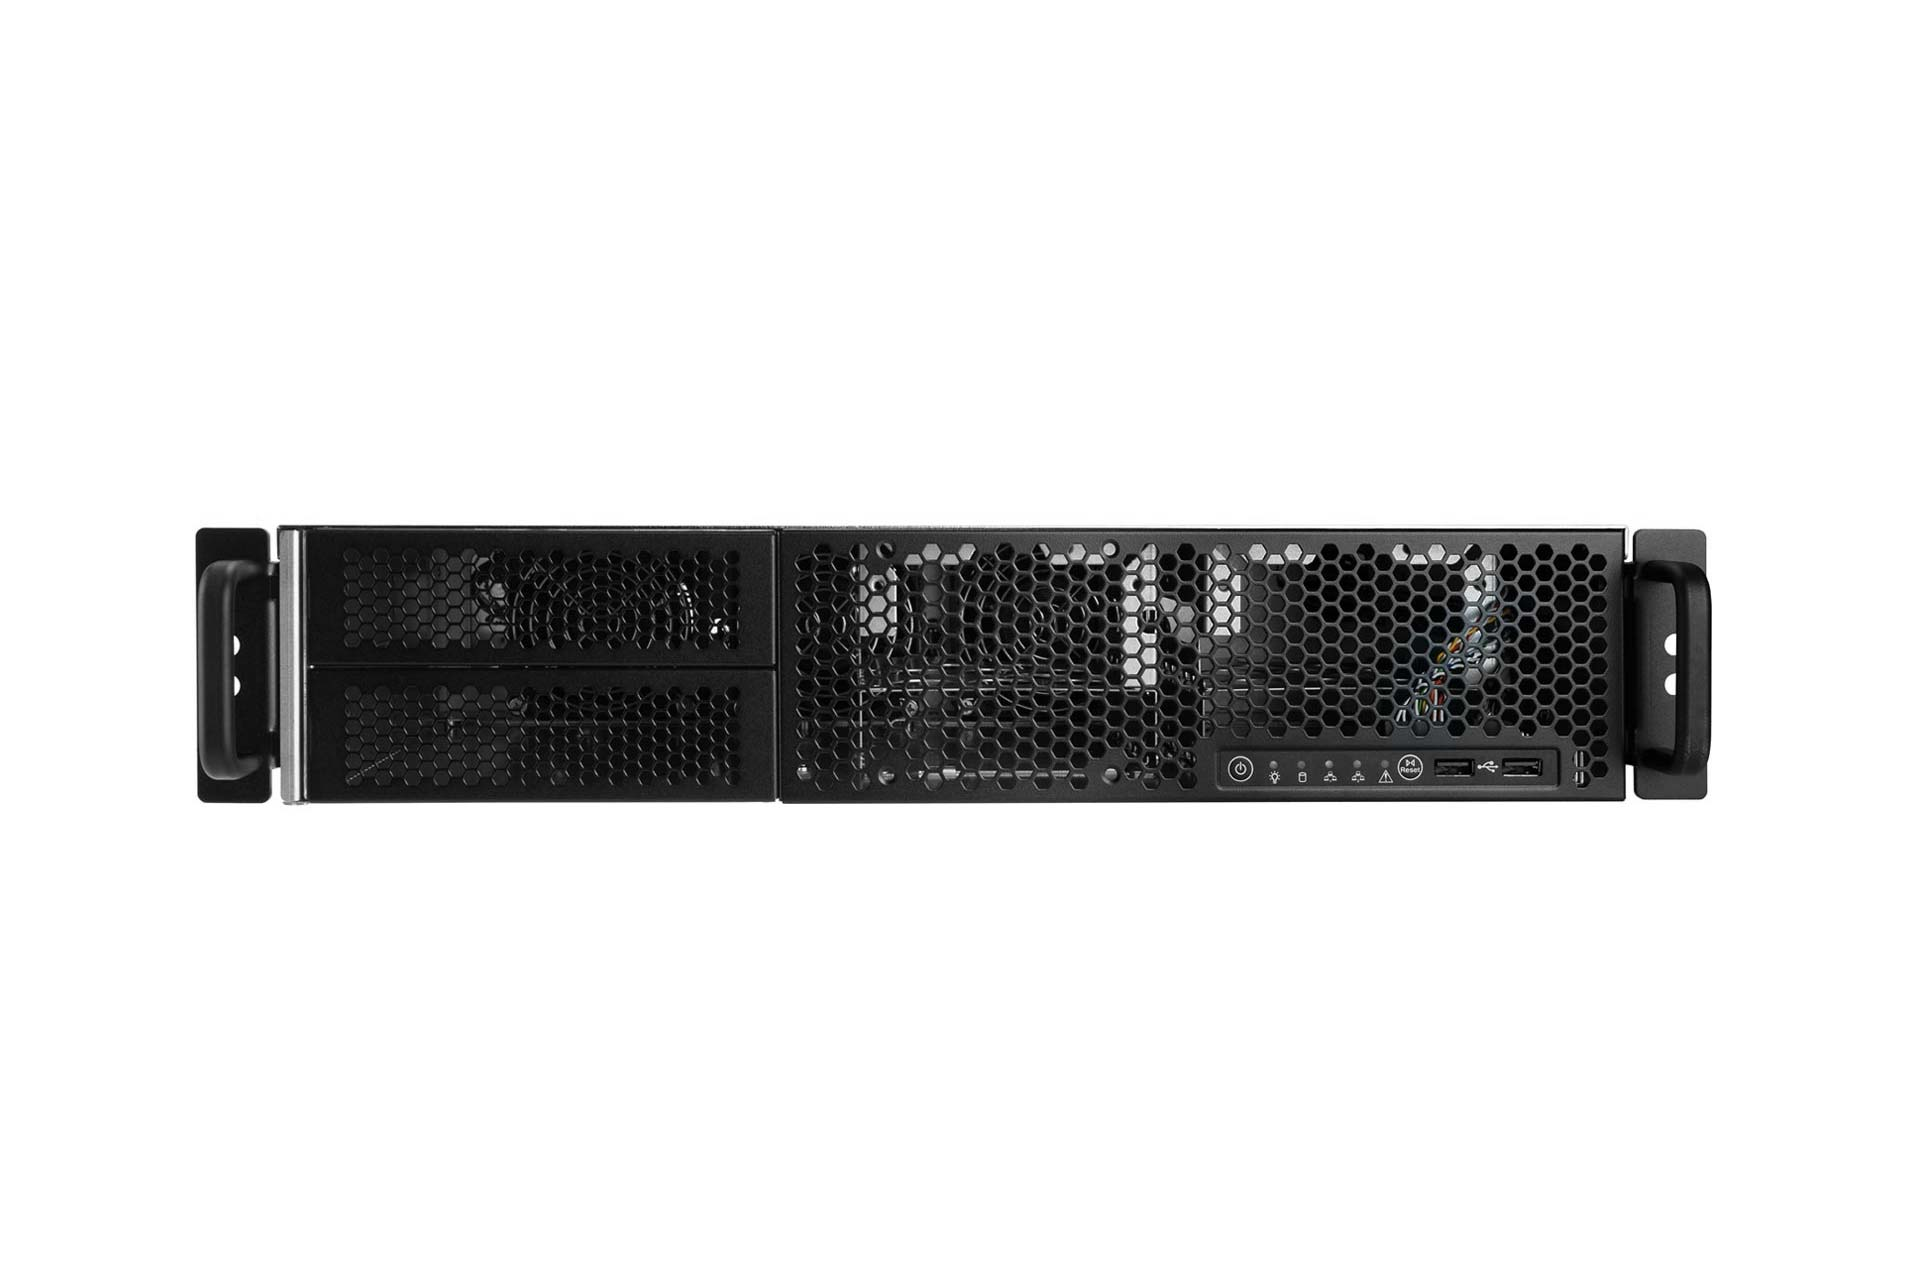 IW-R200-01N - server system assembly